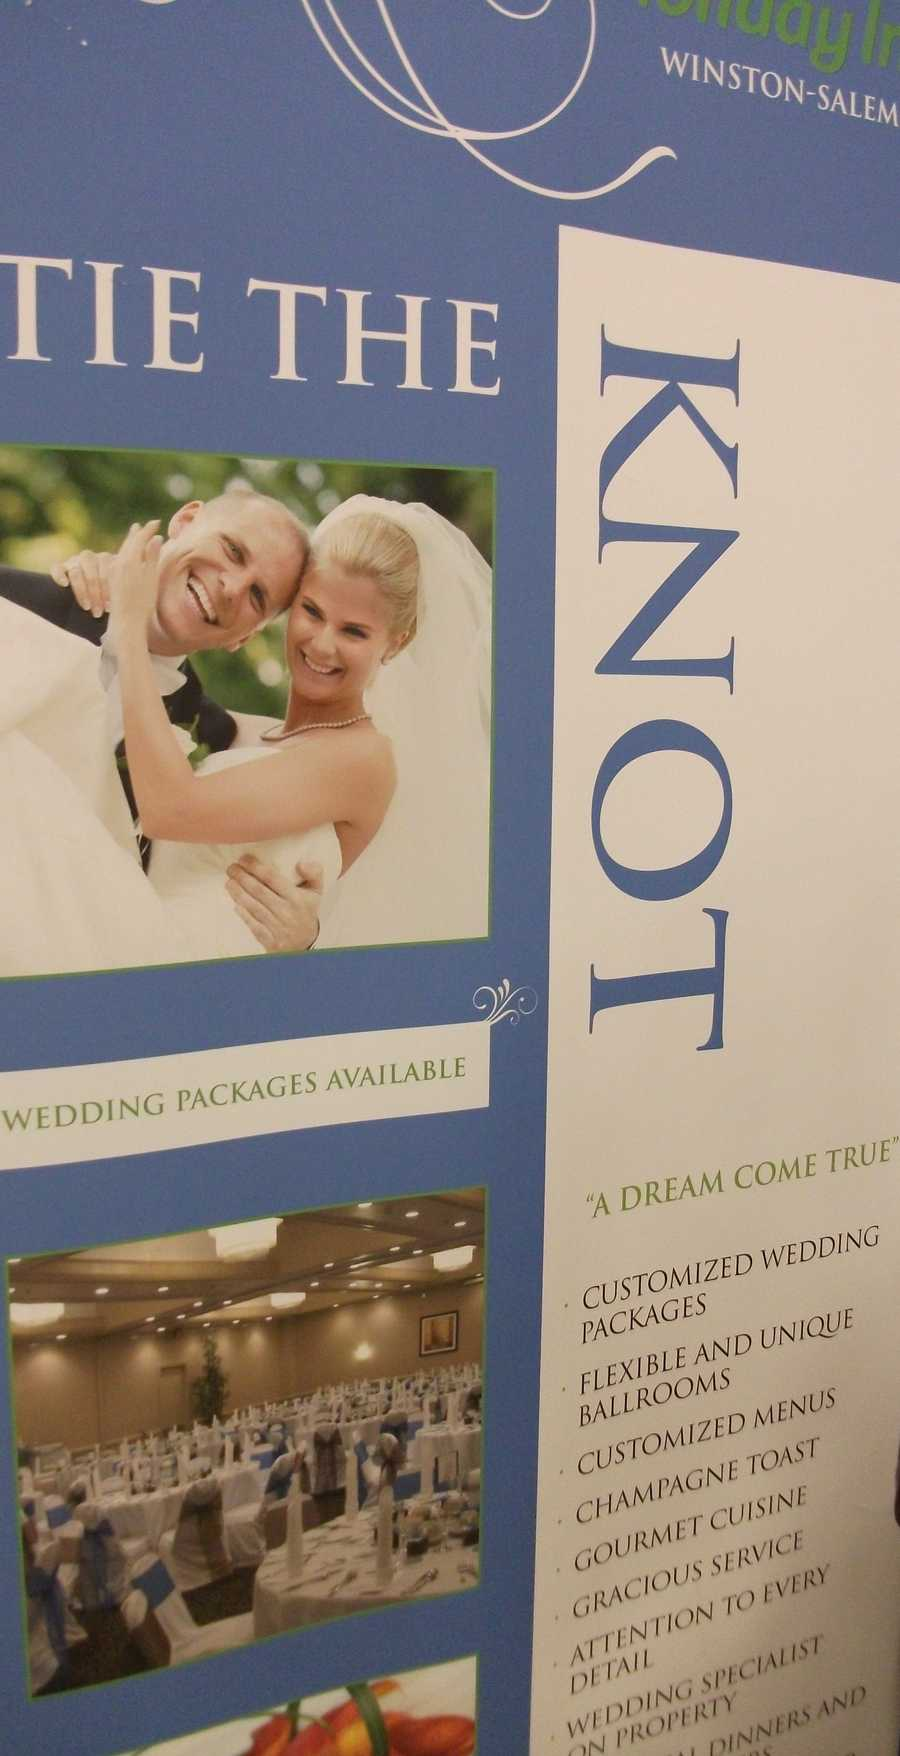 Tie the knot with the help of Holiday Inn in Winston-Salem with on property wedding planner, wedding packages offered, catering and many moreamenities...